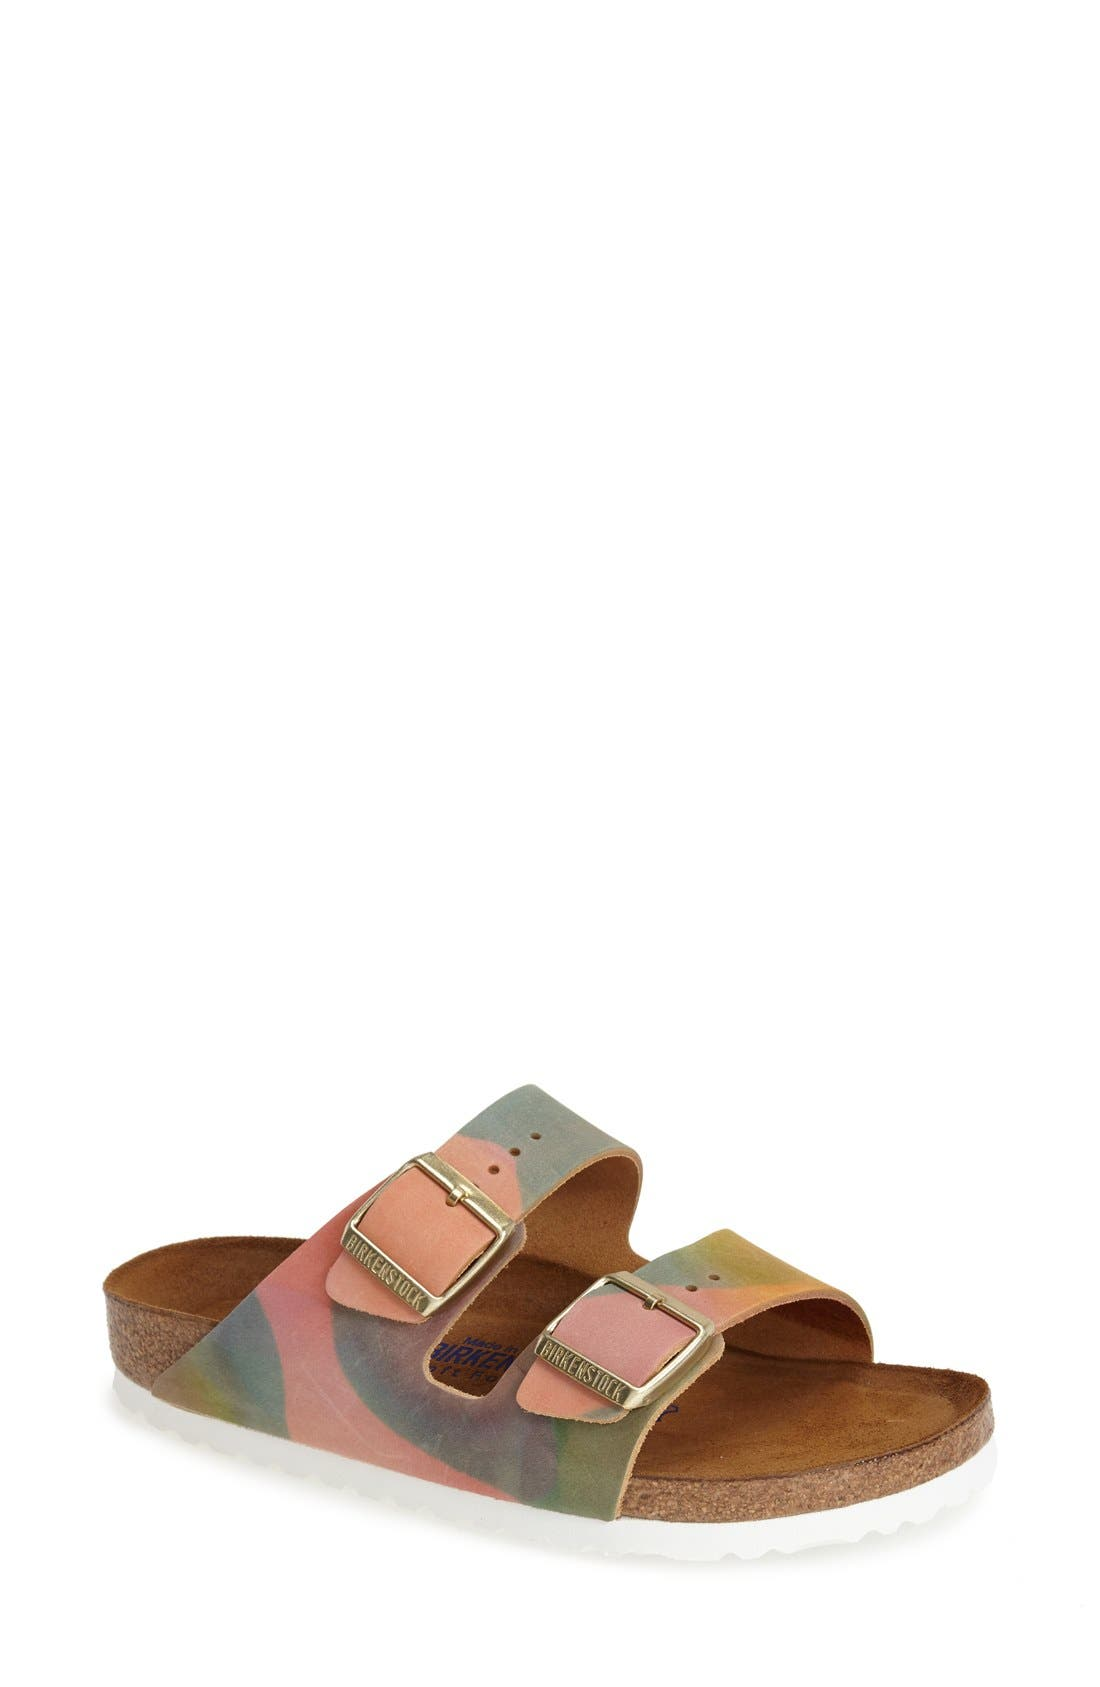 Main Image - Birkenstock 'Arizona' Nubuck Leather Sandal (Women)